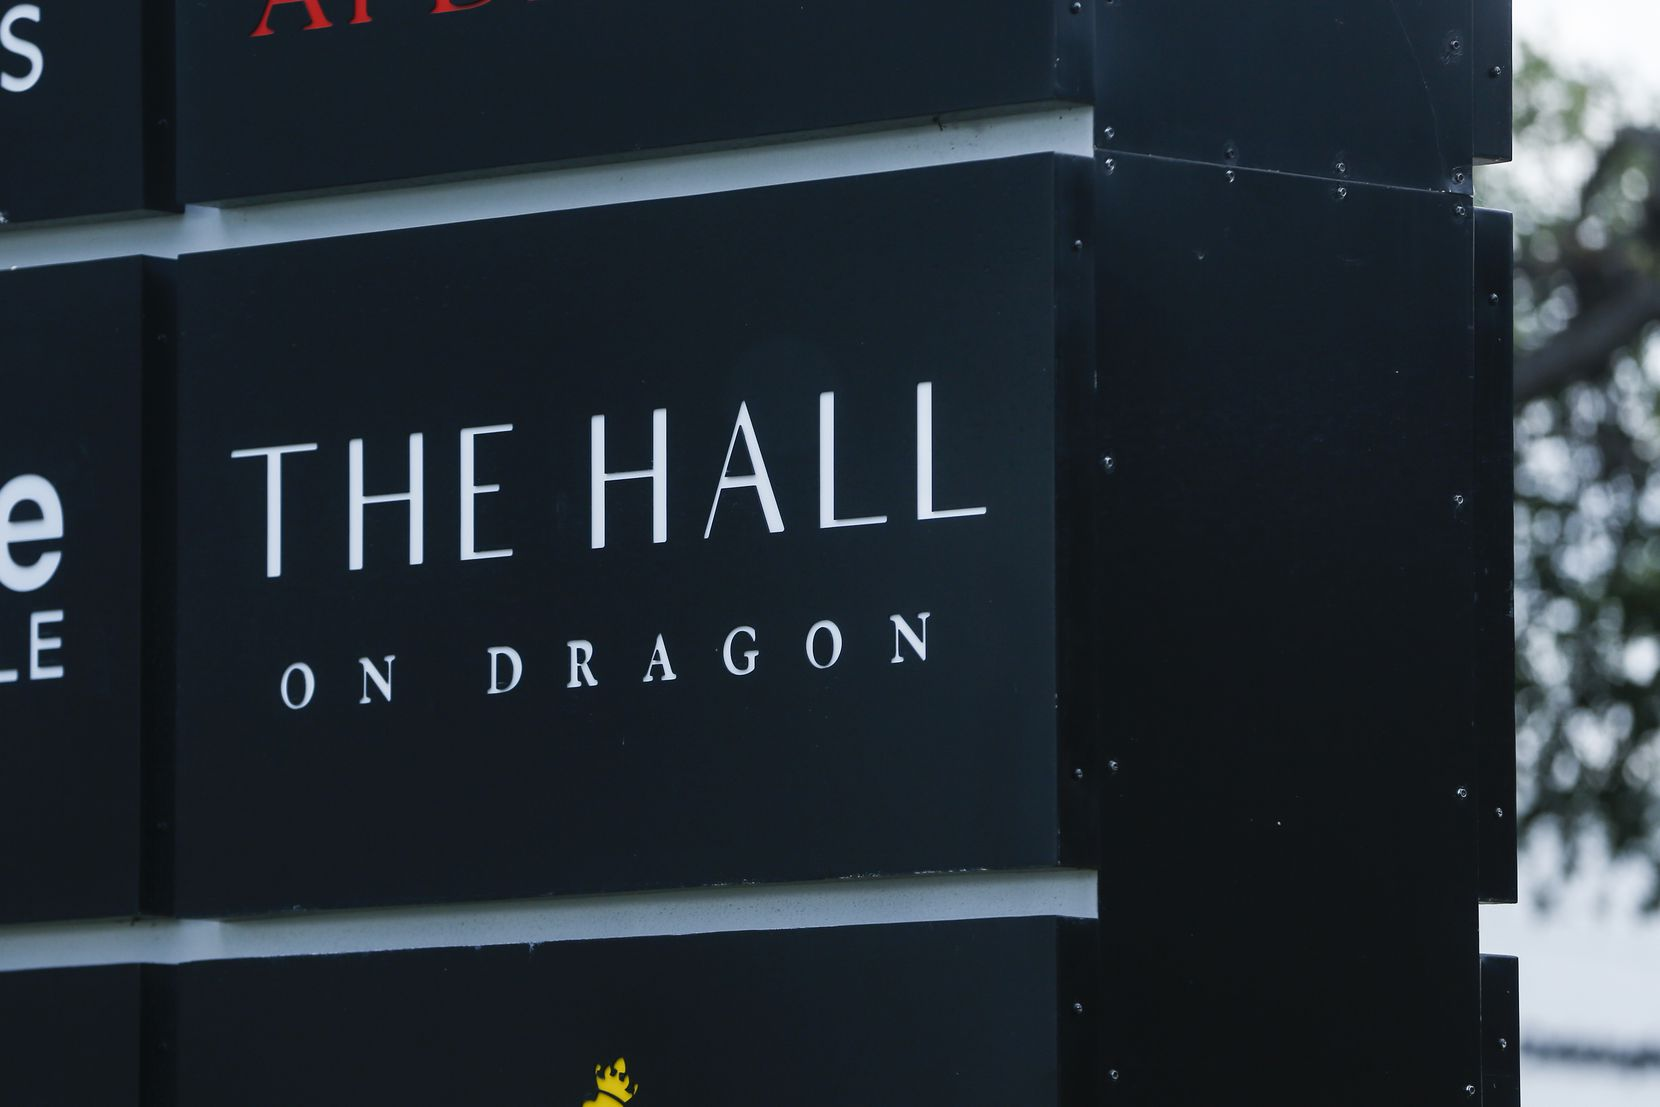 The Hall on Dragon part-owner Lance Hudes said he was surprised by the Facebook post made by the Breast Bridge Network considering it came just five hours after they signed an agreement to cancel the event with the venue and catering company keeping the initial deposits.